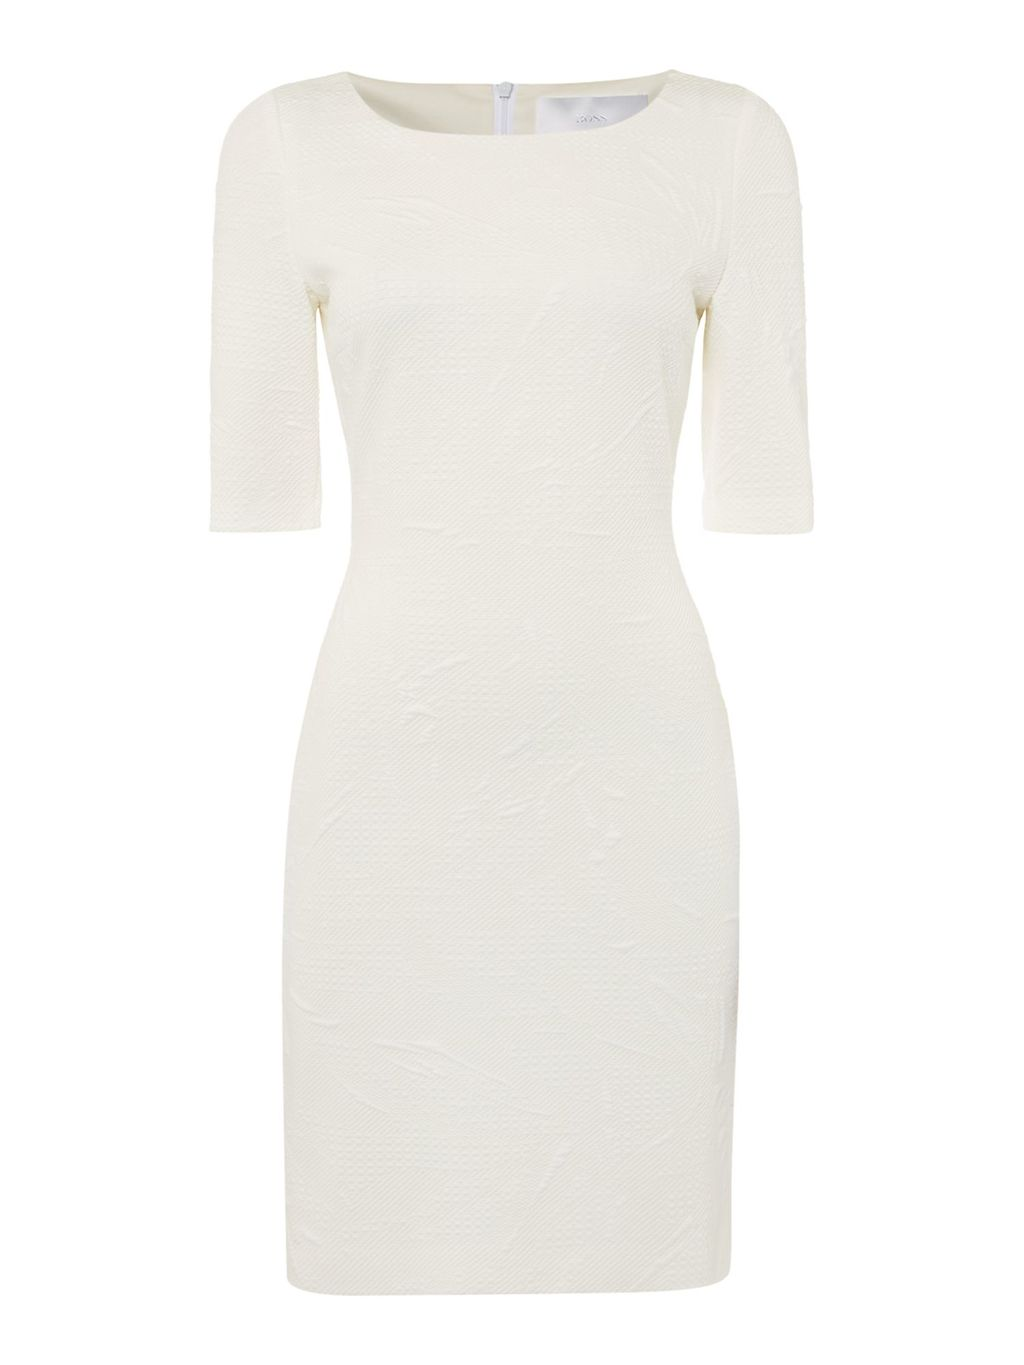 Hiwinna Embroidered Stretch Dress, White - style: shift; fit: tight; pattern: plain; predominant colour: white; occasions: evening; length: just above the knee; fibres: polyester/polyamide - stretch; neckline: crew; sleeve length: short sleeve; sleeve style: standard; texture group: jersey - clingy; pattern type: fabric; season: s/s 2016; wardrobe: event